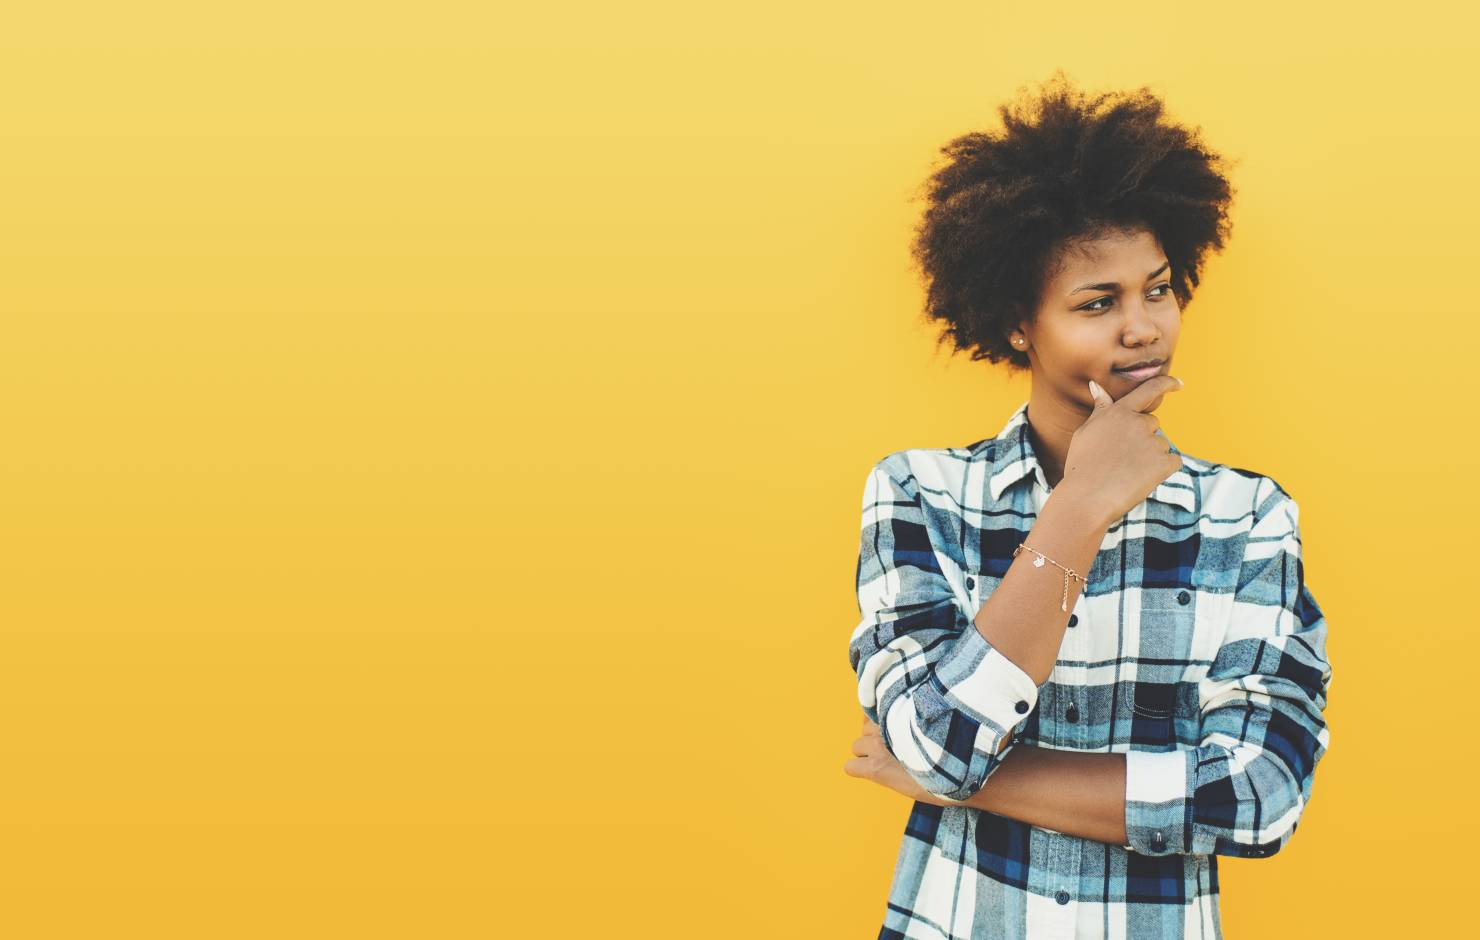 young woman thinking in front of a yellow wall